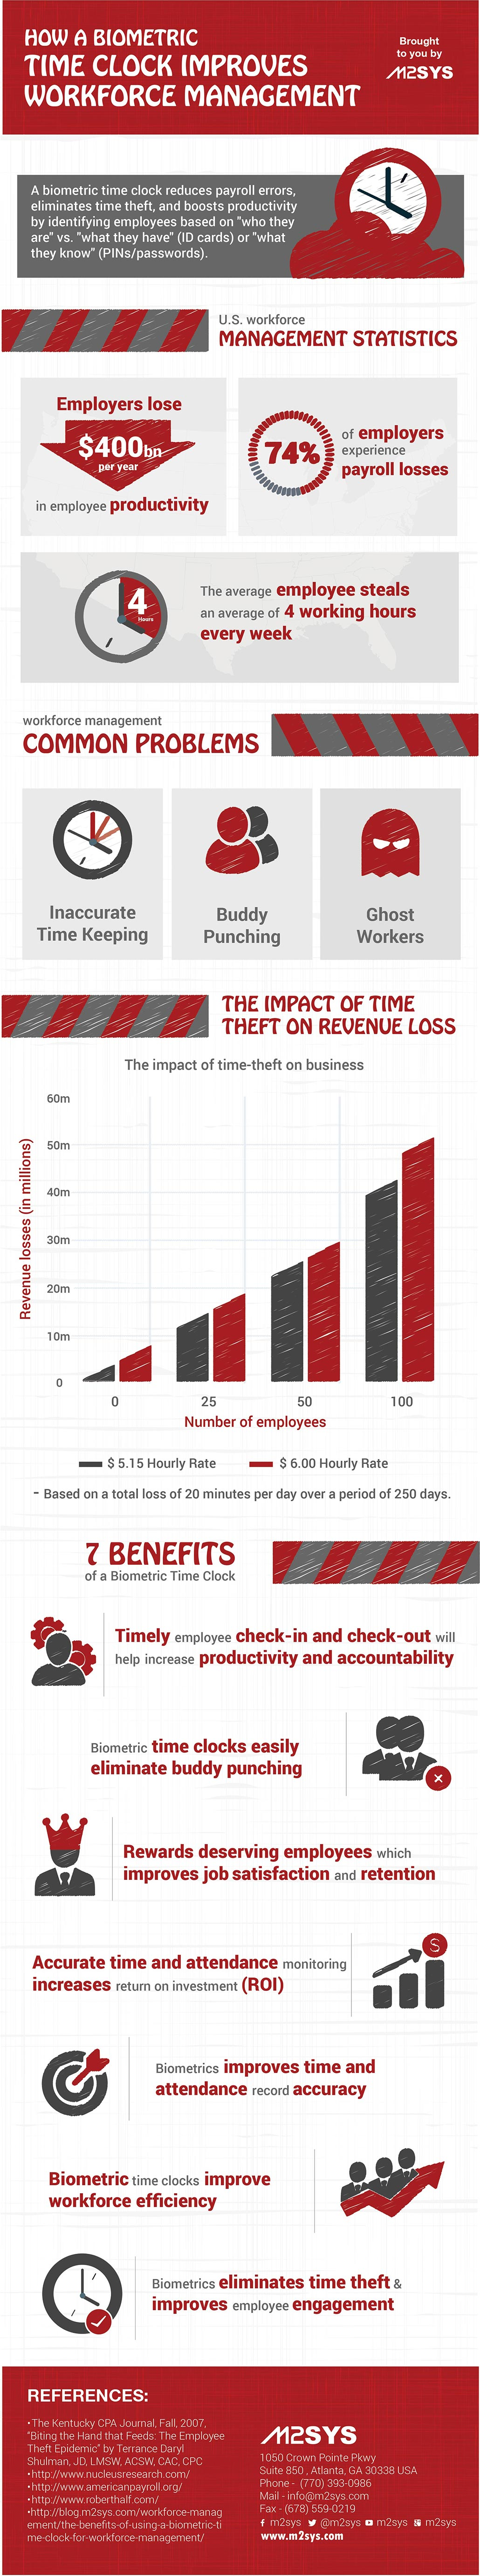 Improves Workforce Management with biometric time clock infographic